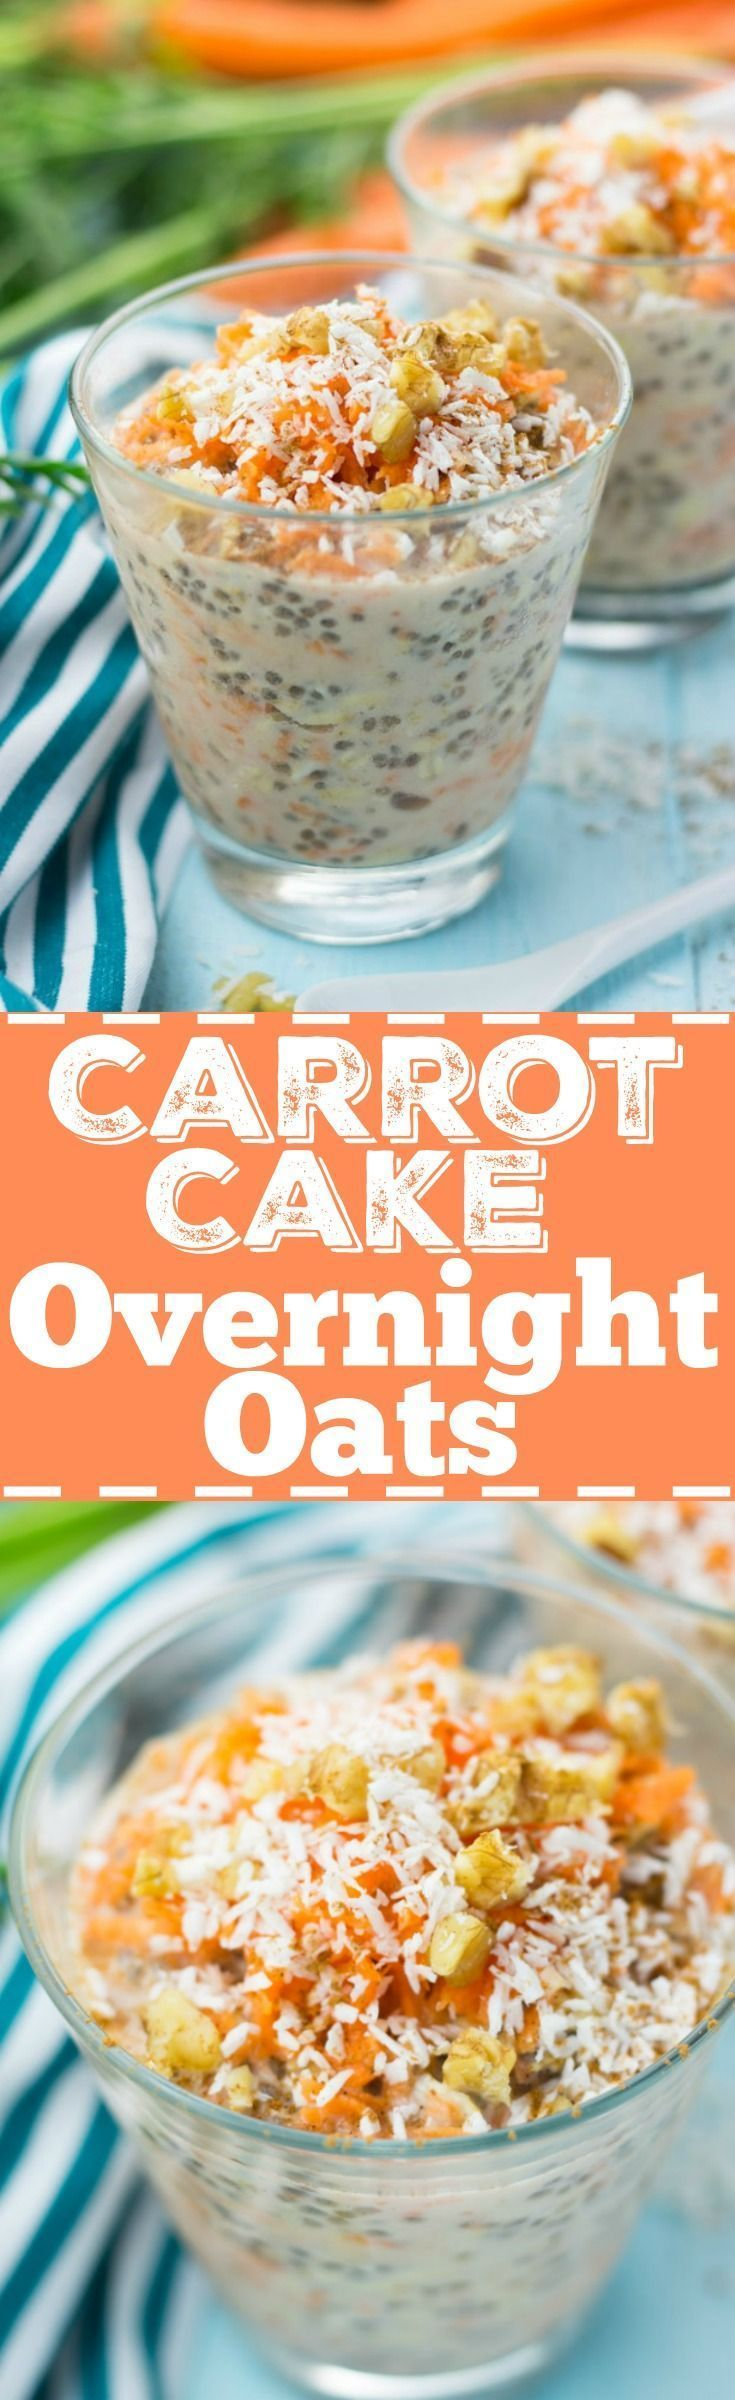 Carrot cake overnight oats with chia seeds, walnuts, and coconut flakes are so delicious and super easy to make. Plus, they're incredibly healthy! (scheduled via http://www.tailwindapp.com?utm_source=pinterest&utm_medium=twpin)